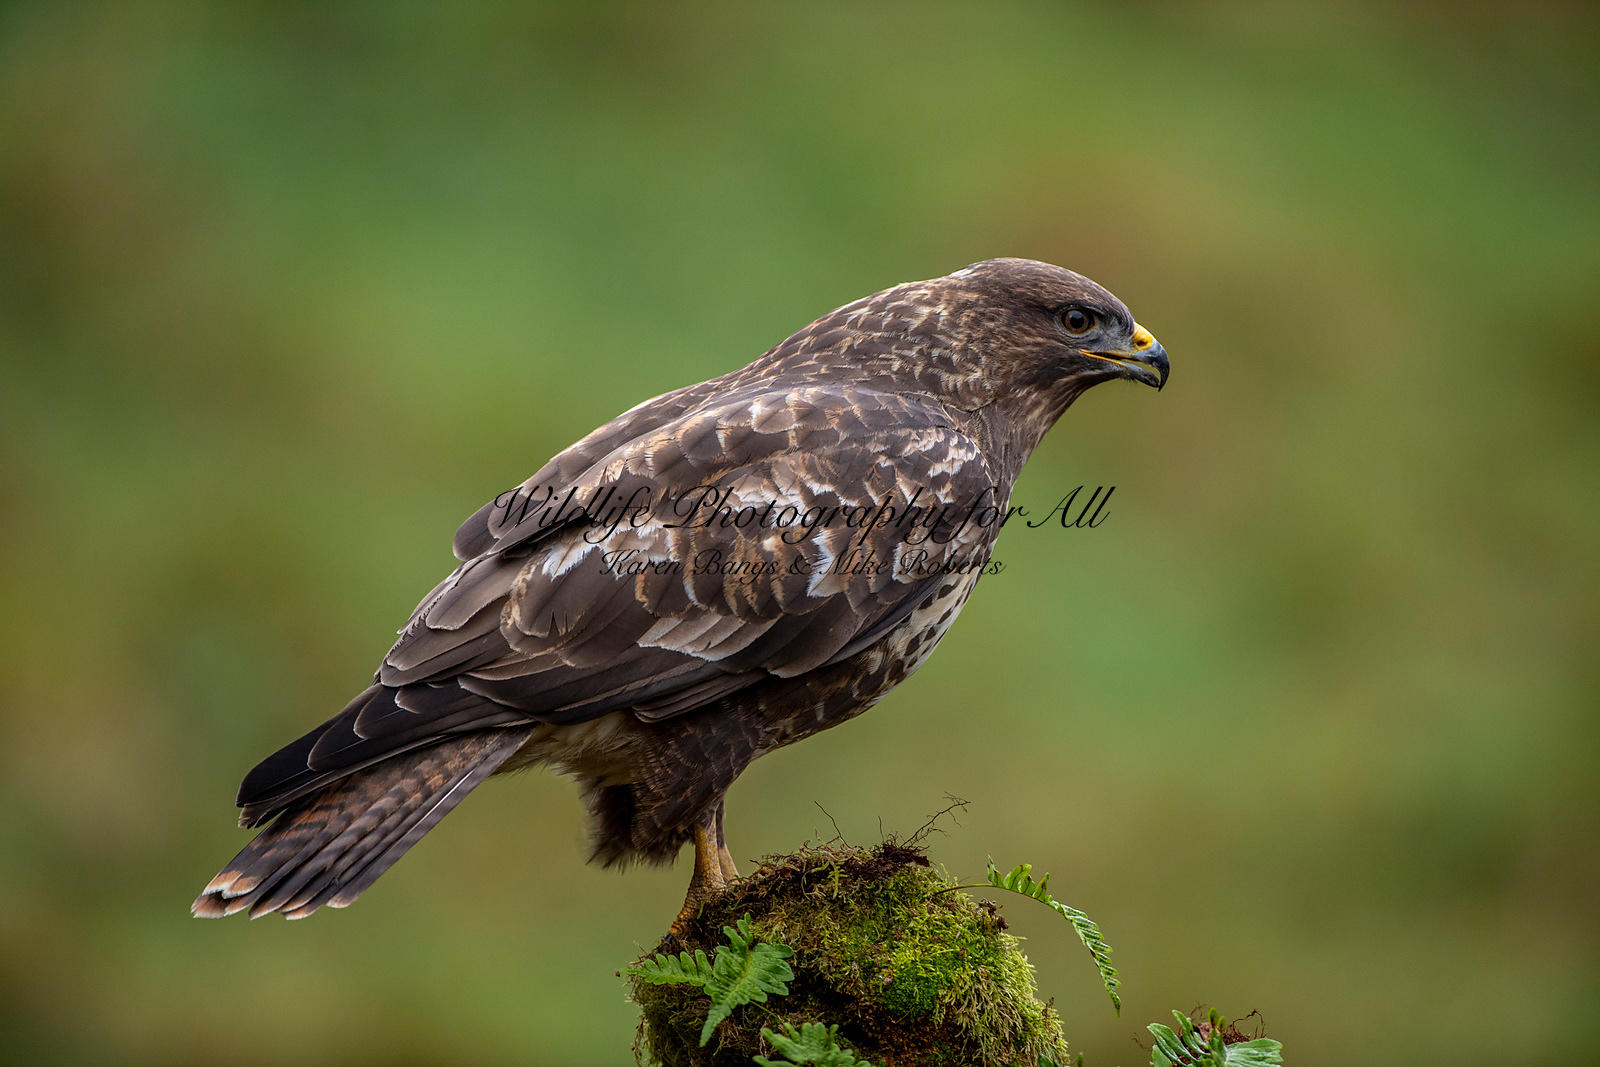 Buzzard - Mike Roberts